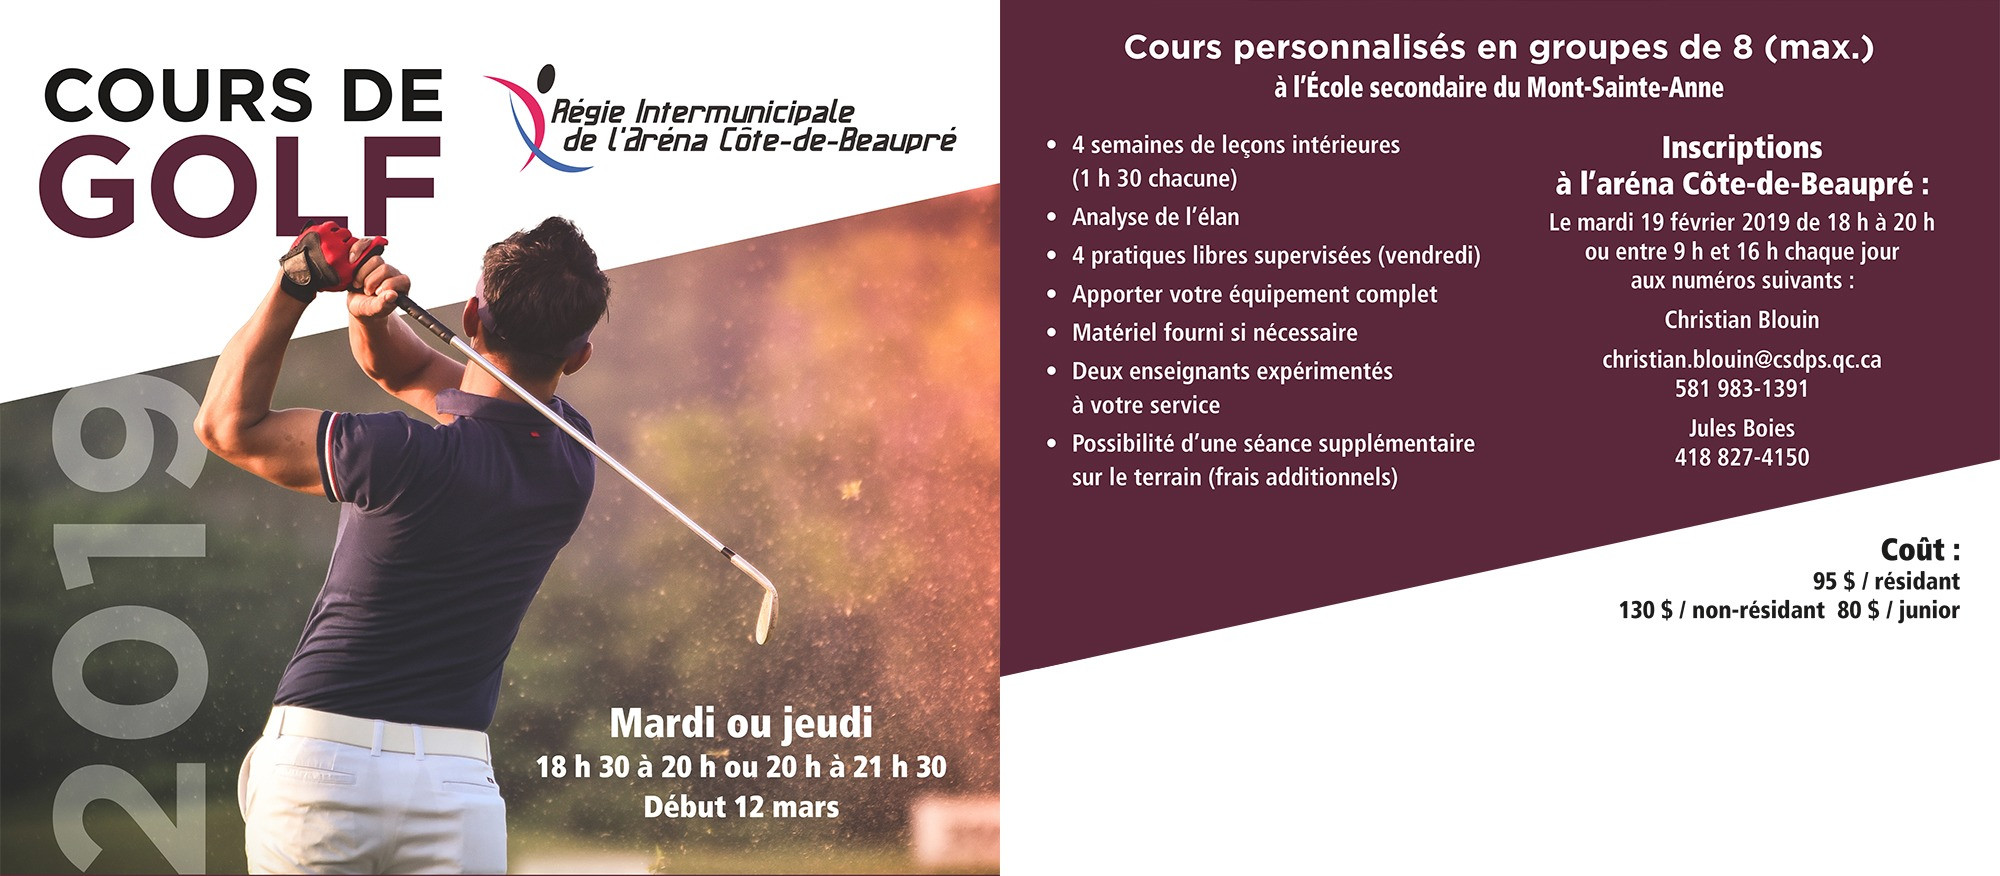 cours_golf2019_11x17-H